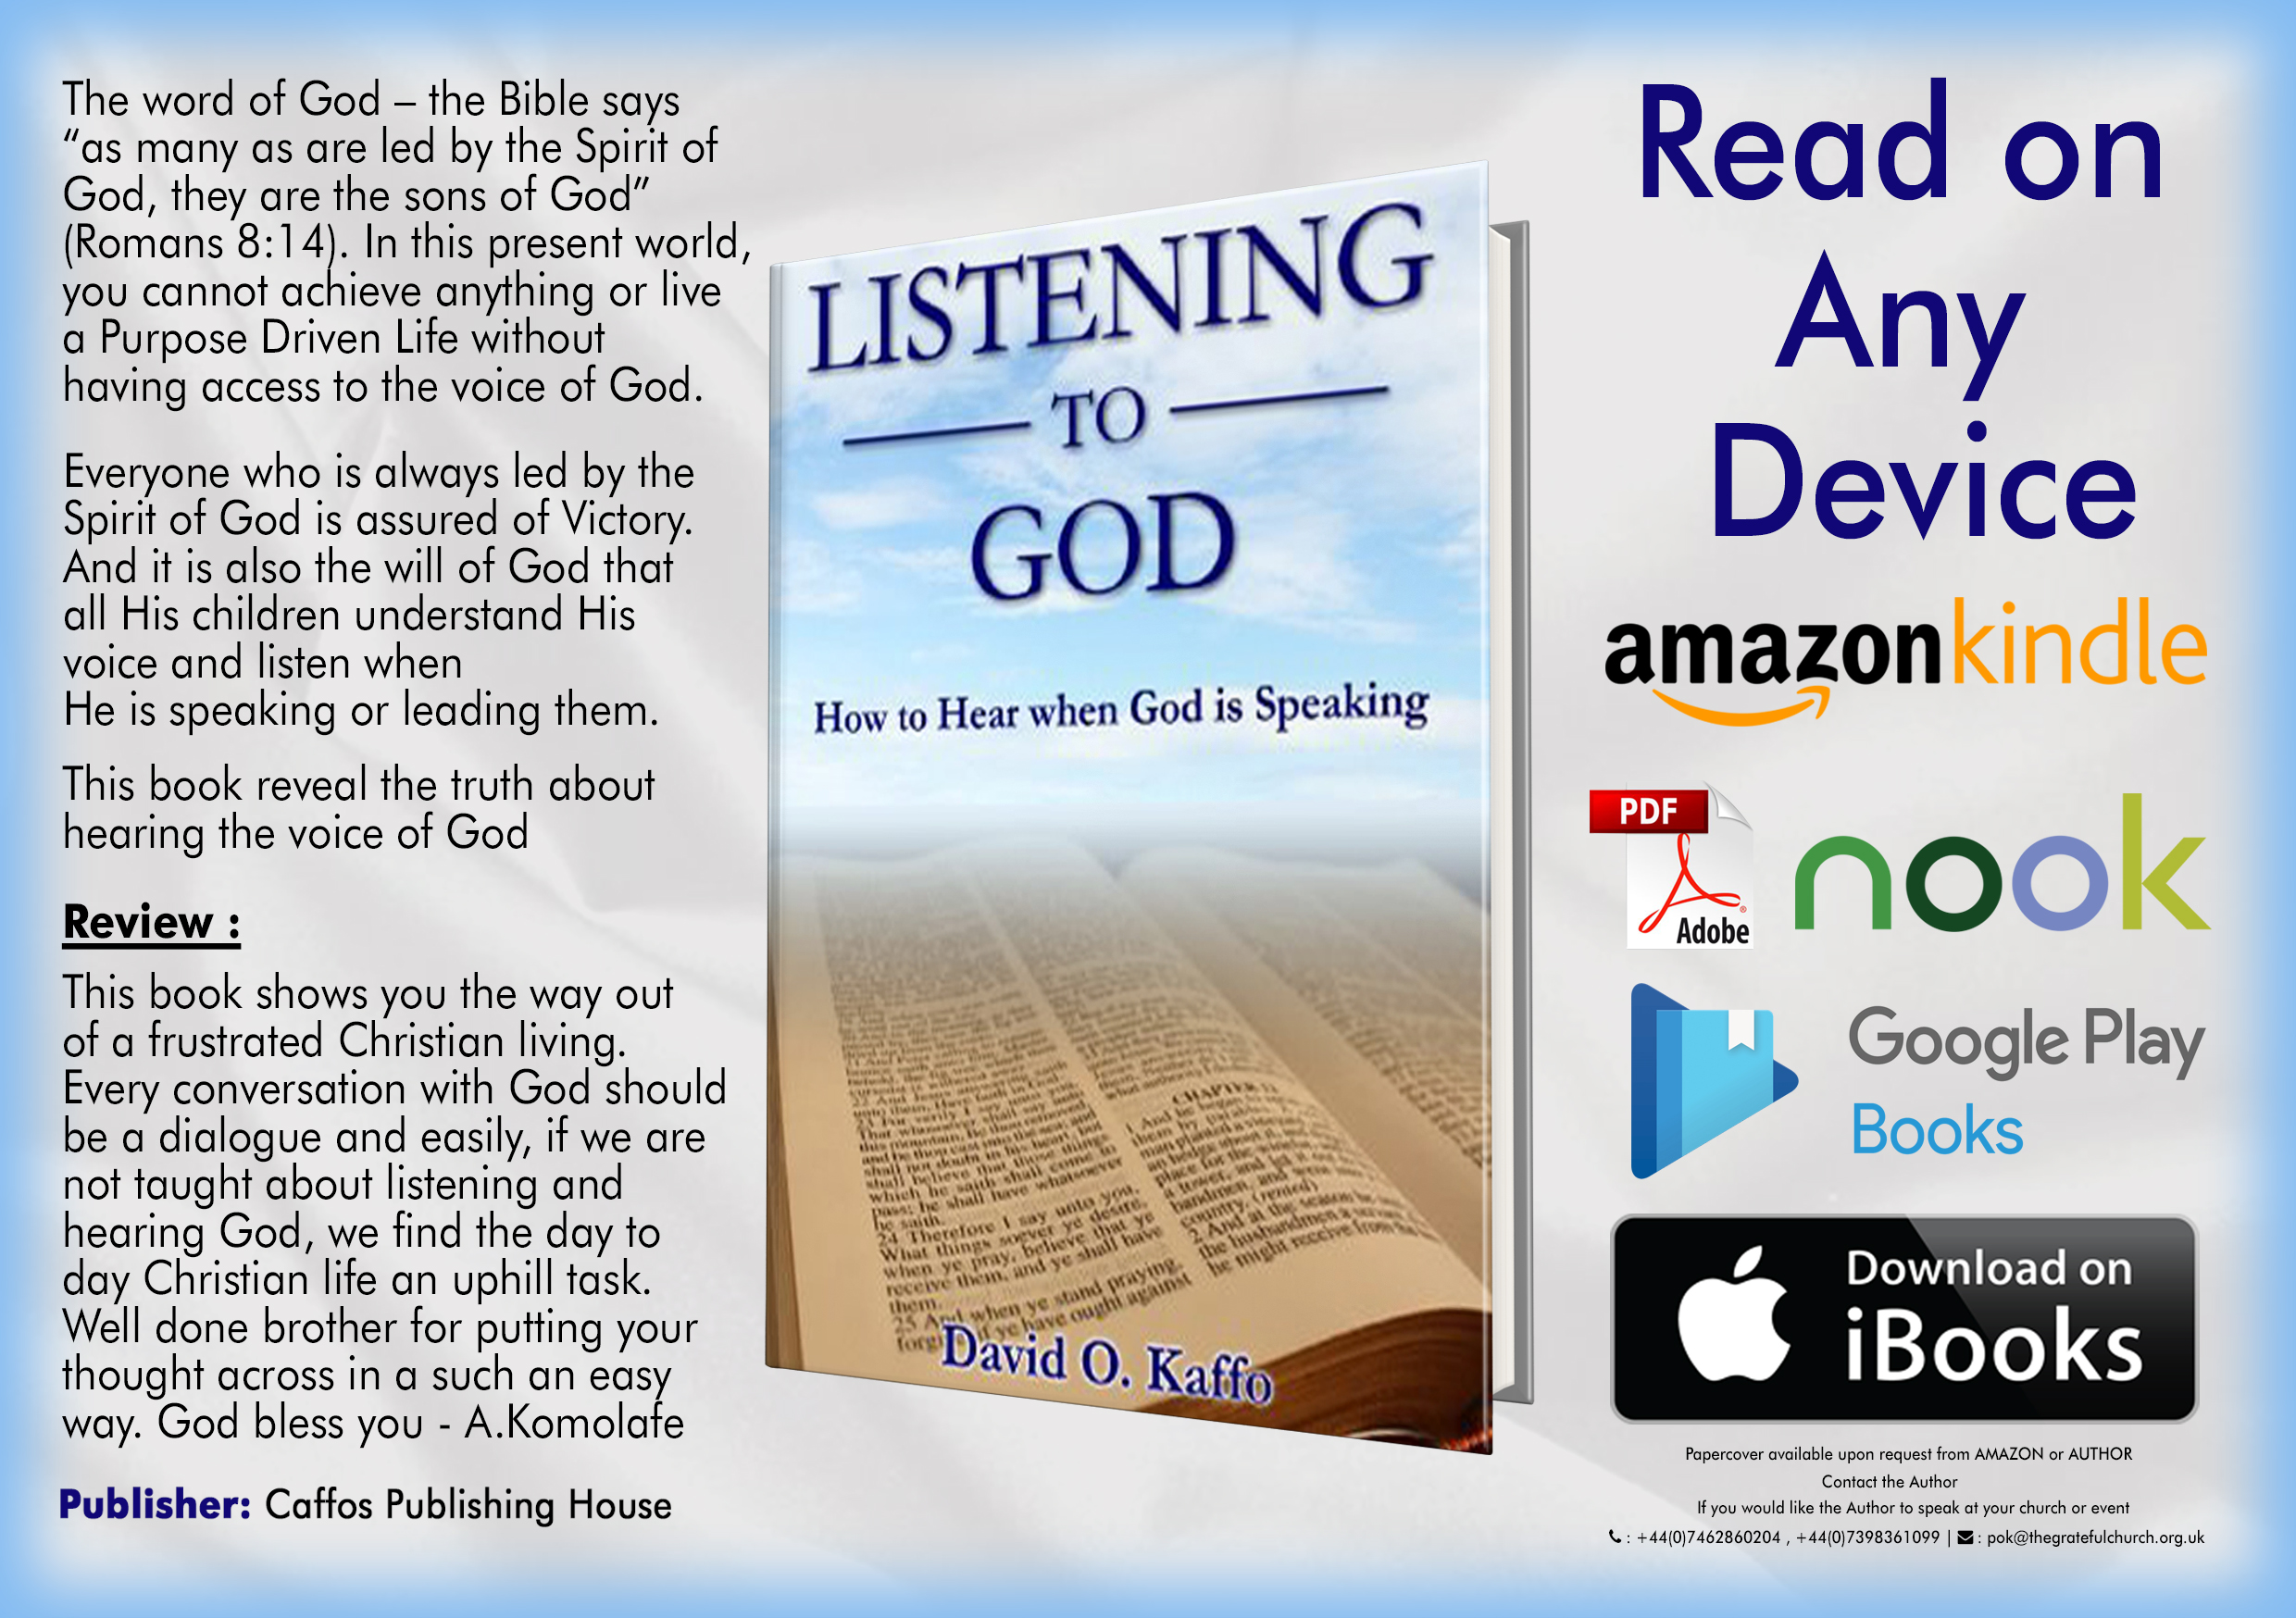 Listening to God by David O. Kaffo